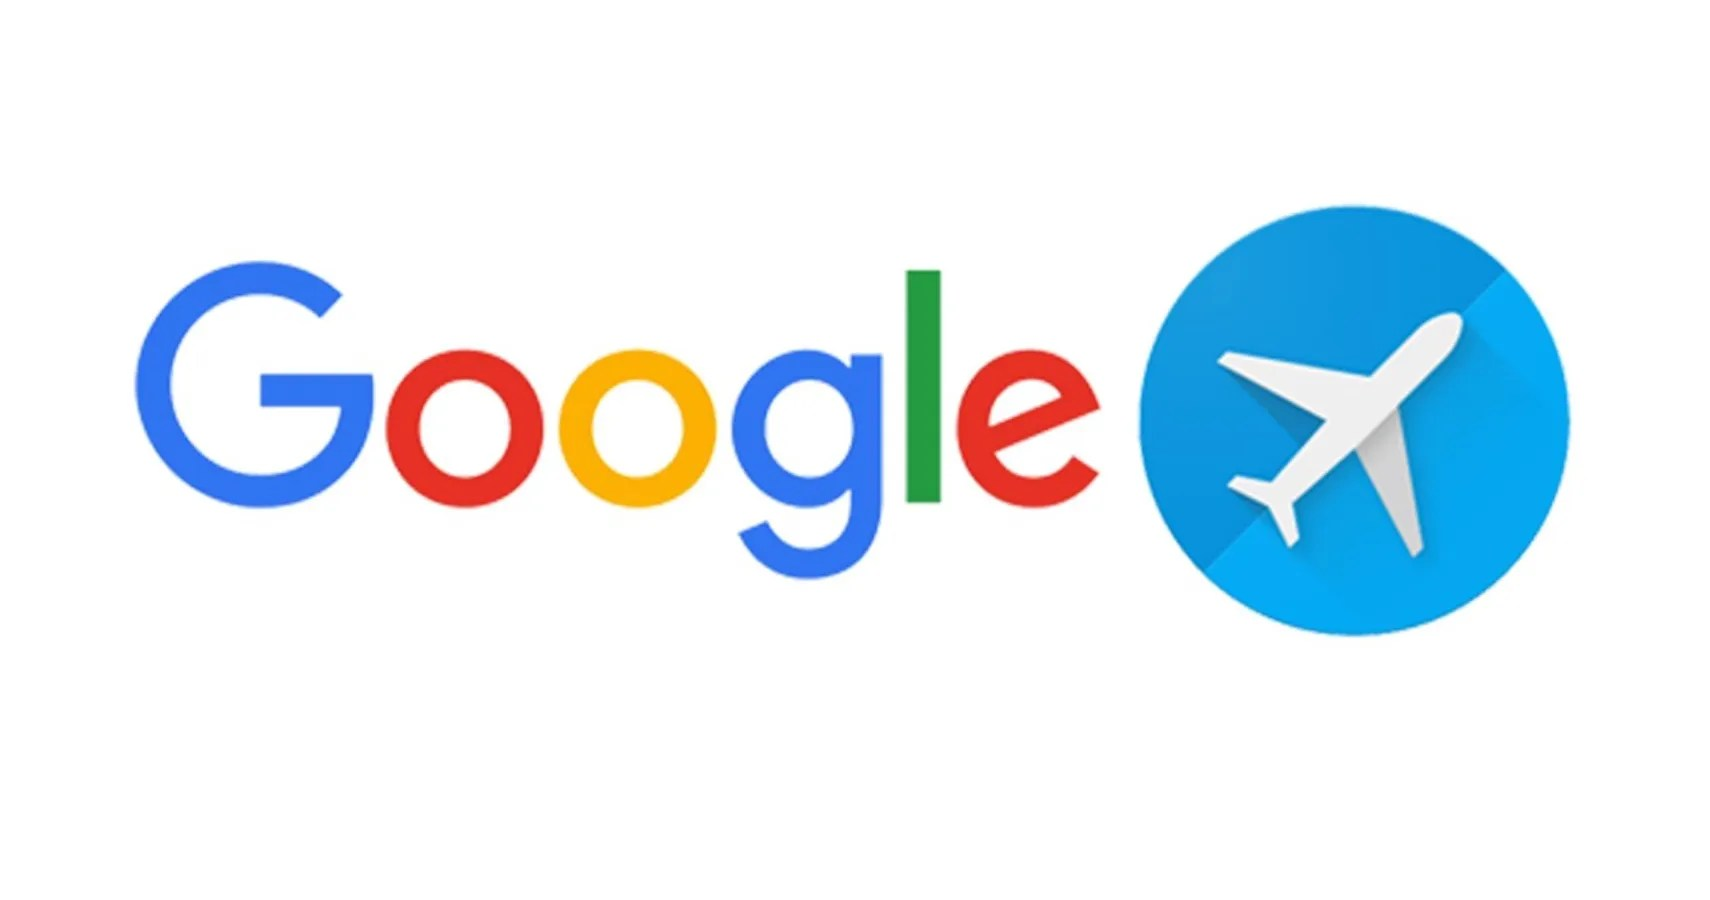 Google Flights Google Flights Adds Price Tracking Comparison To Help You Get